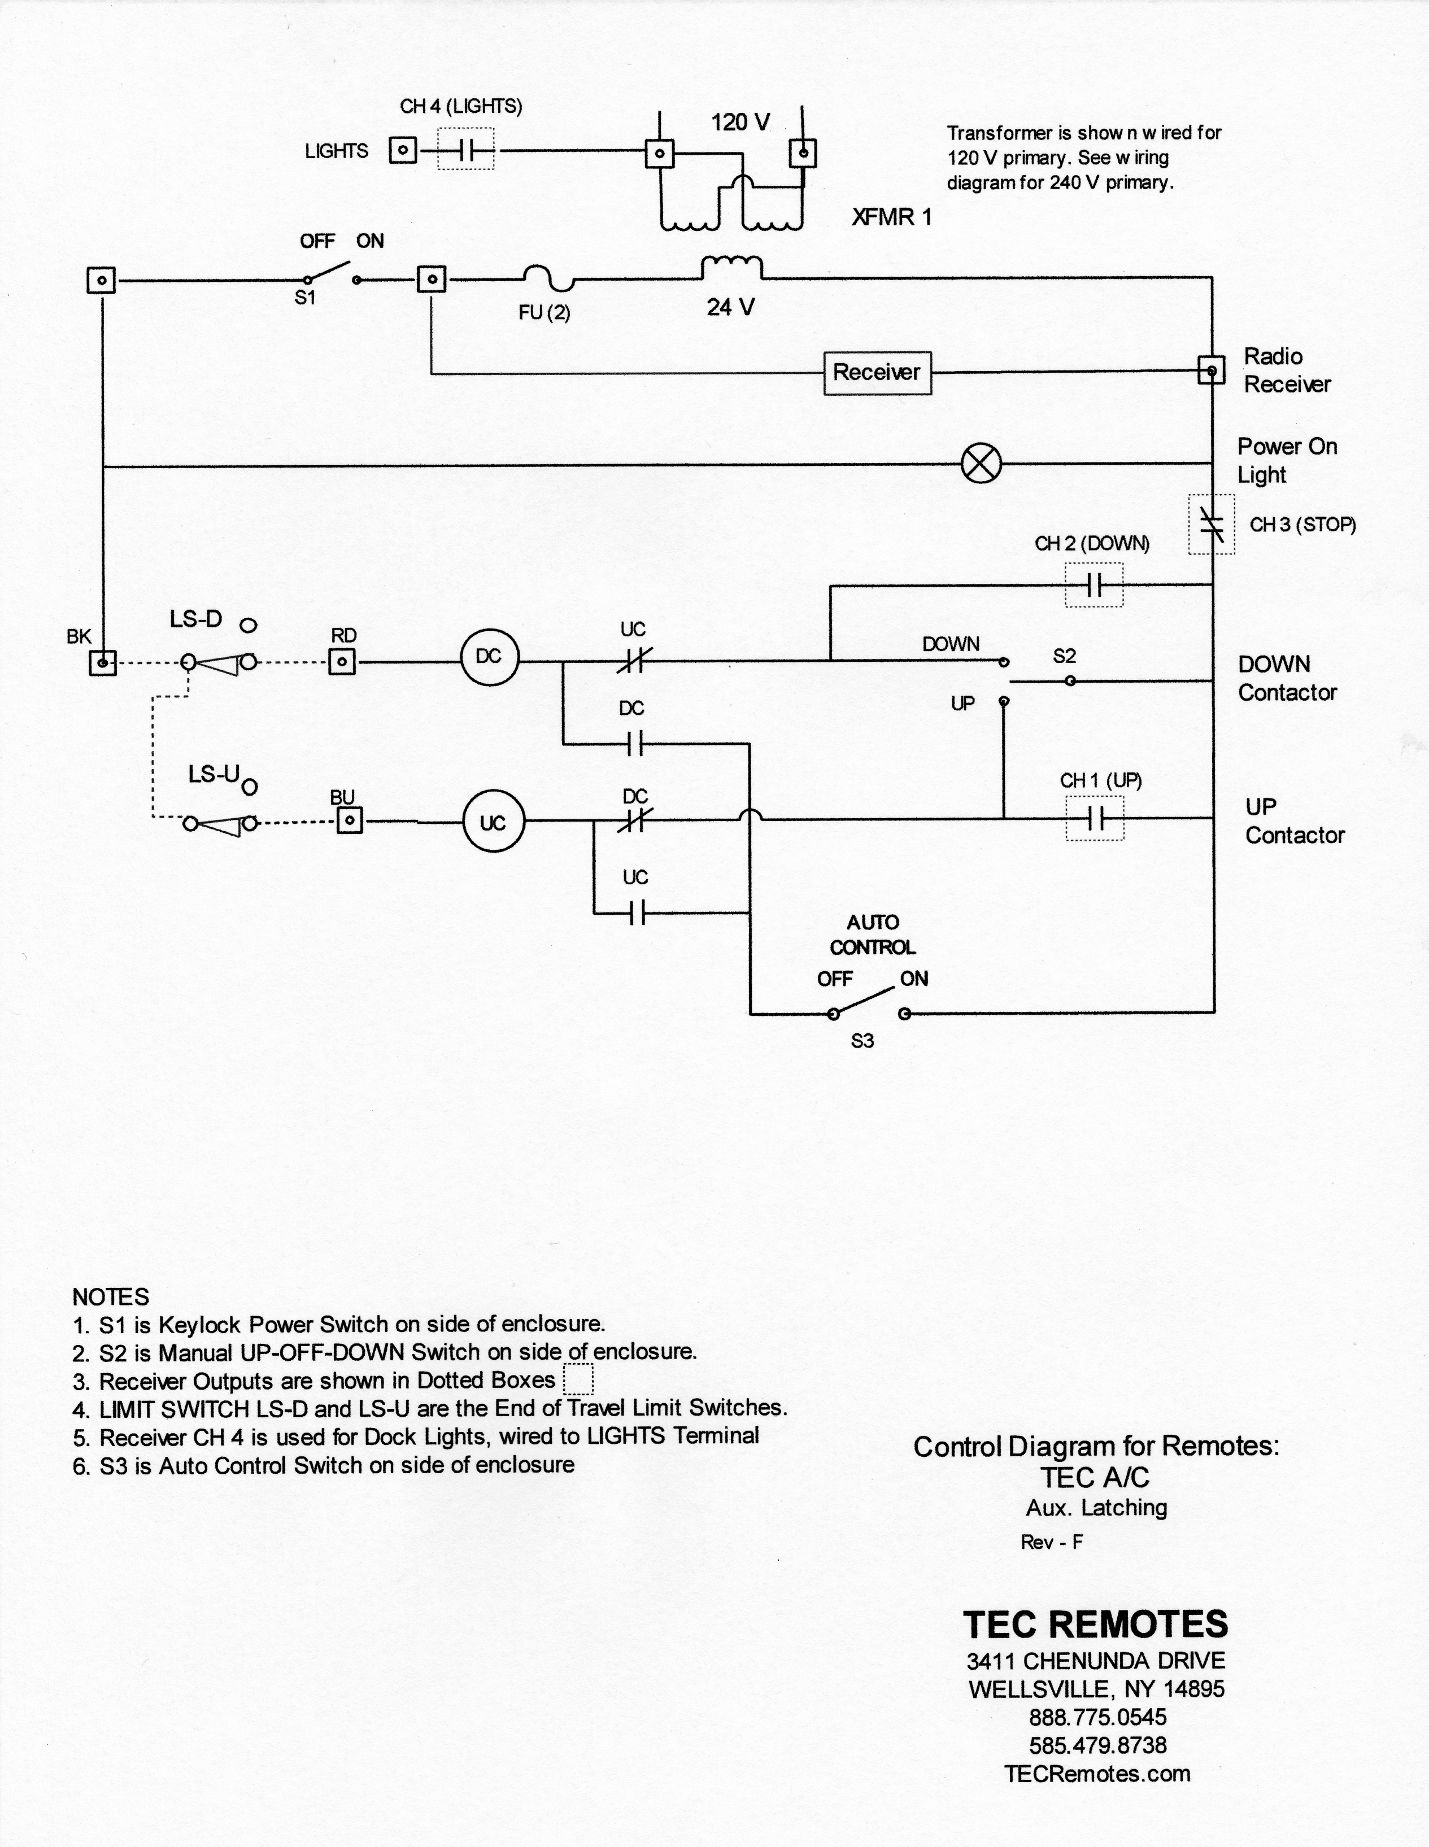 Ladder Series 2 Wiring Diagram Lights Diagrams In Parallel Fantastic Inspiration 3 Way Switch Light House